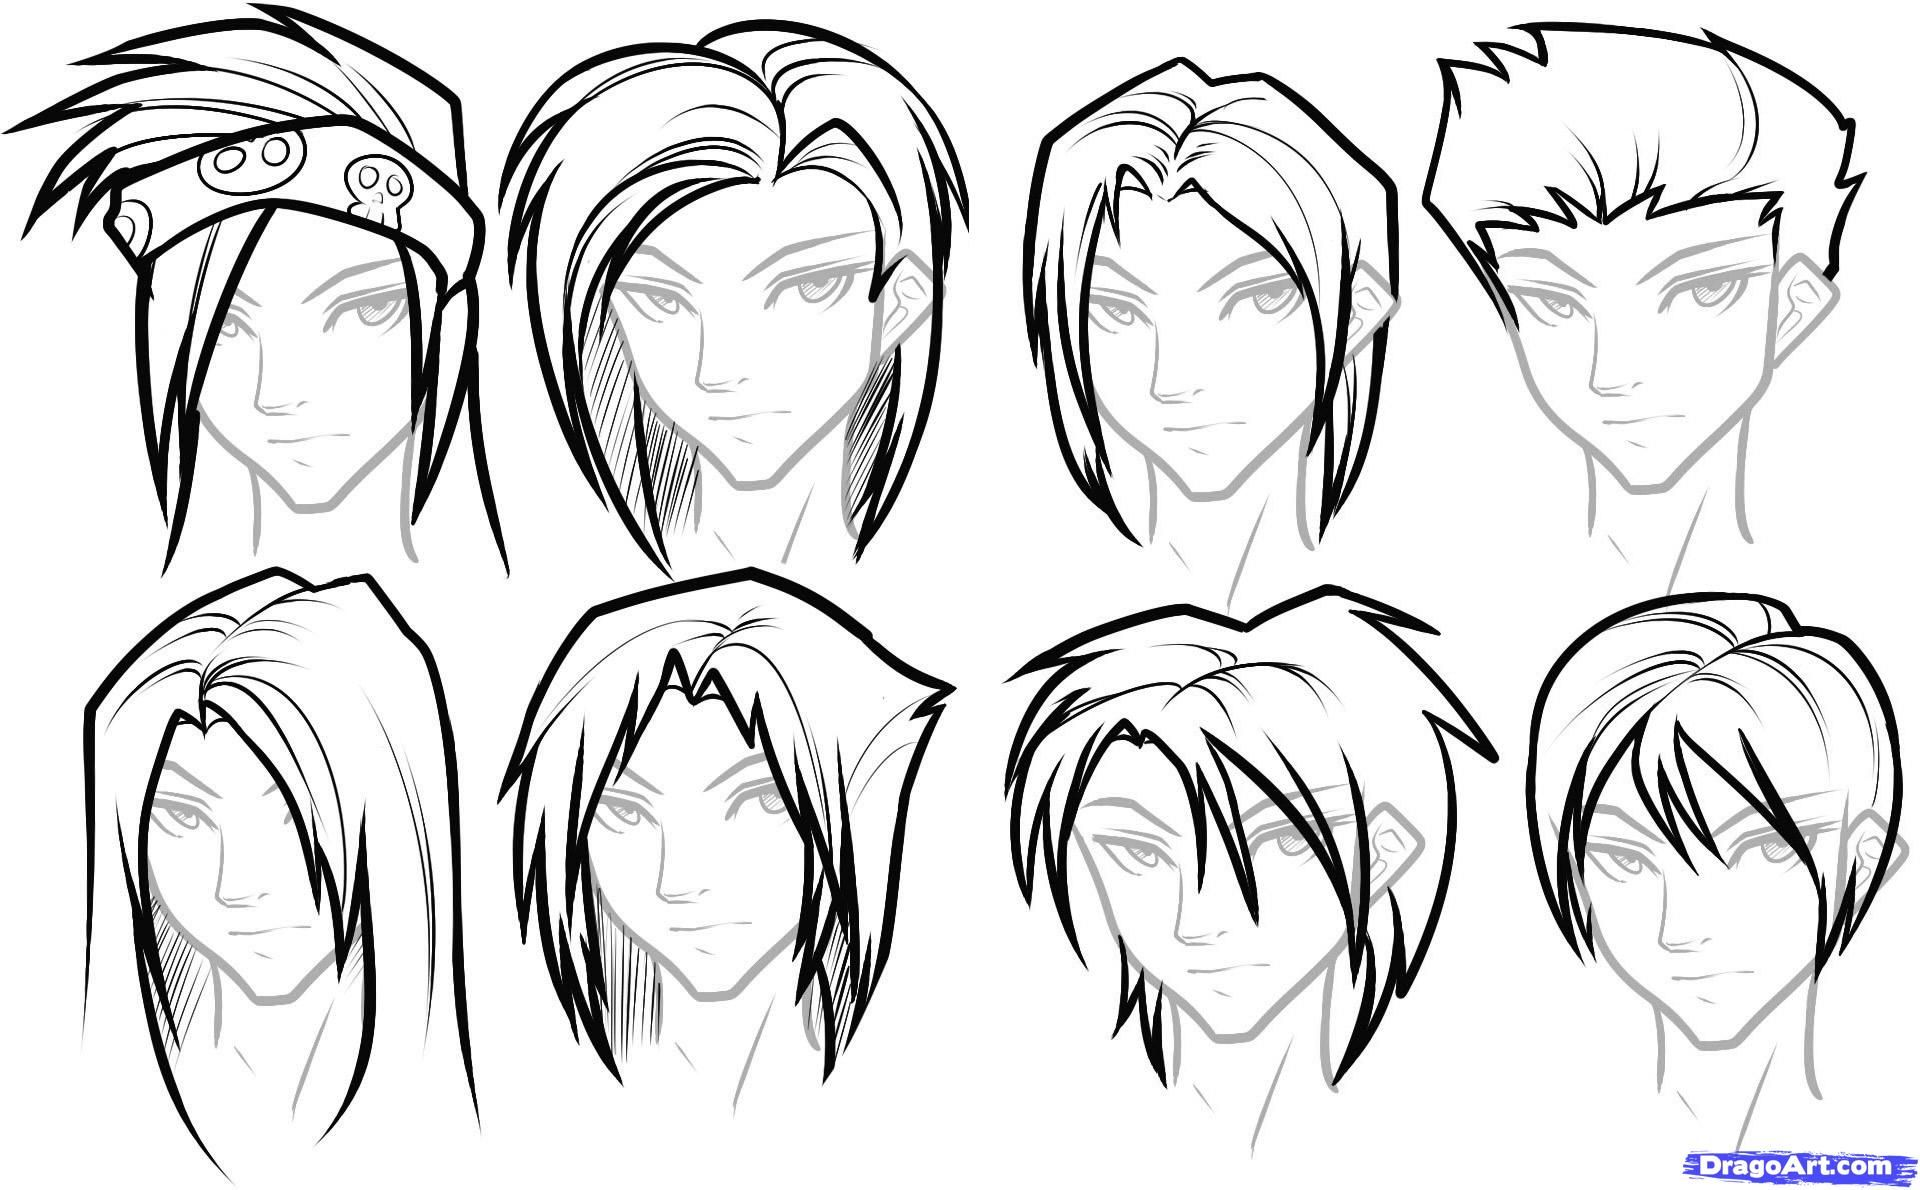 How To Draw Hair For Boys Step 14 1920x1190 Anime Boy Hair Manga Hair Anime Character Drawing